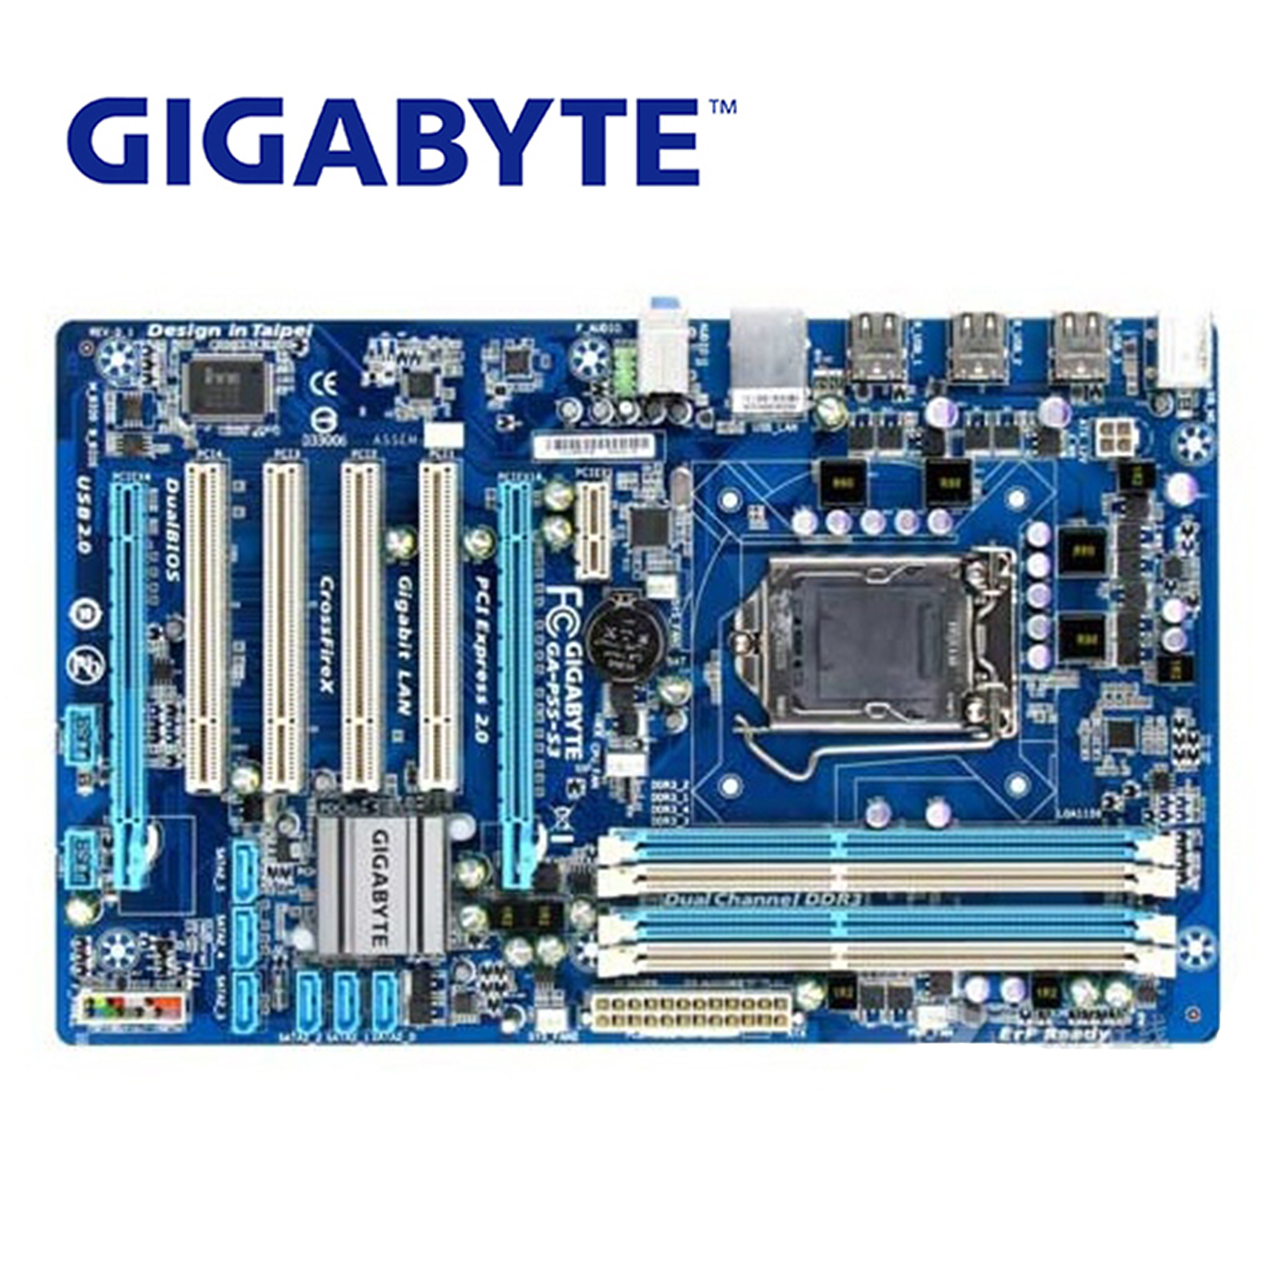 LGA1156 DDR3 Gigabyte GA-P55-S3 100% Original Motherboard 16G H55 P55 S3 P55-S3 Desktop Mainboard Systemboard Used Mother board gigabyte ga p55 s3 100% original motherboard lga 1156 ddr3 16g h55 p55 s3 p55 s3 desktop mainboard systemboard used mother board